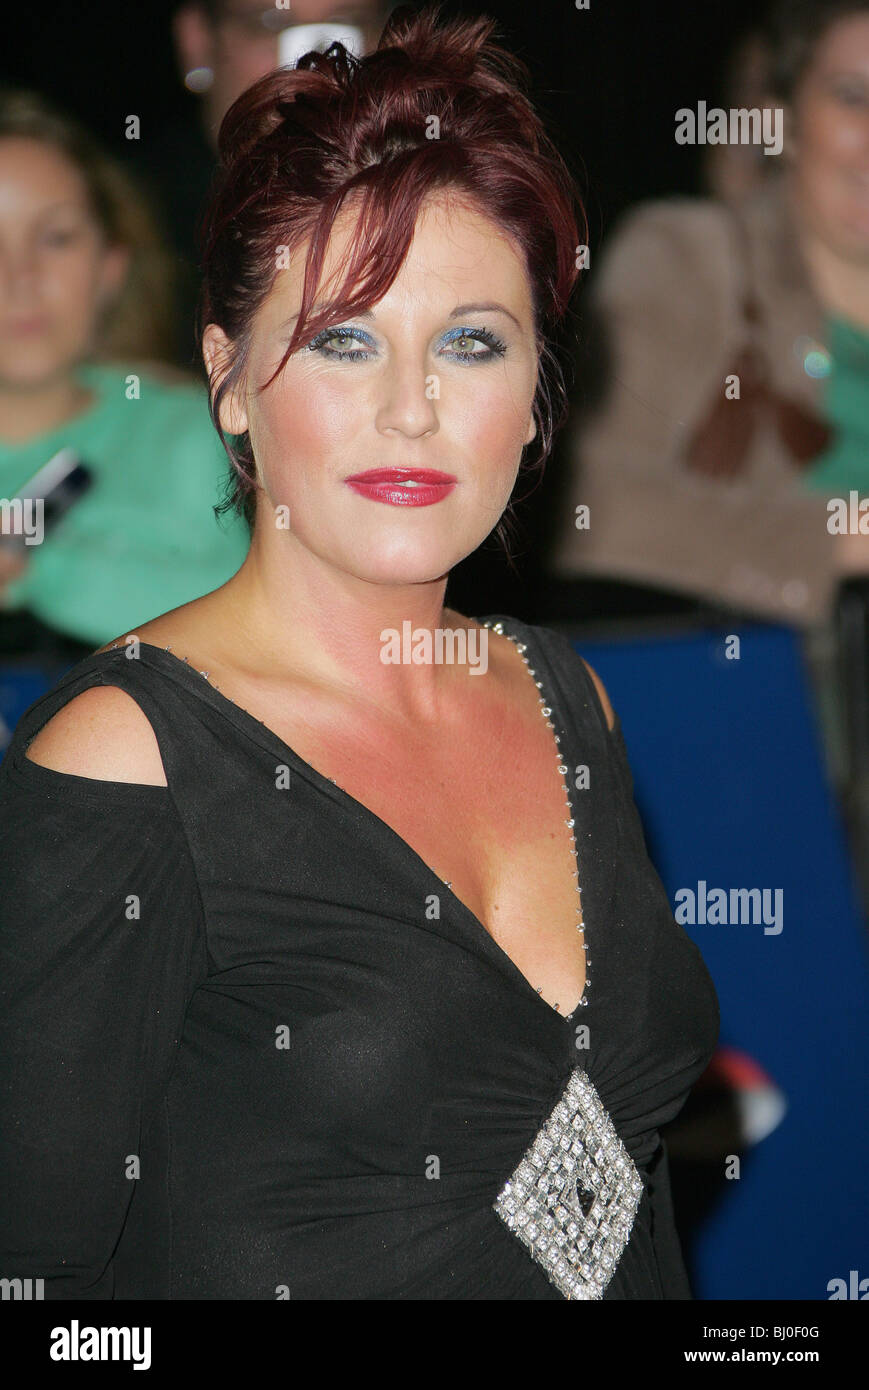 JESSIE WALLACE ACTRESS ROYAL ALBERT HALL  LONDON  ENGLAND 25/10/2005 - Stock Image